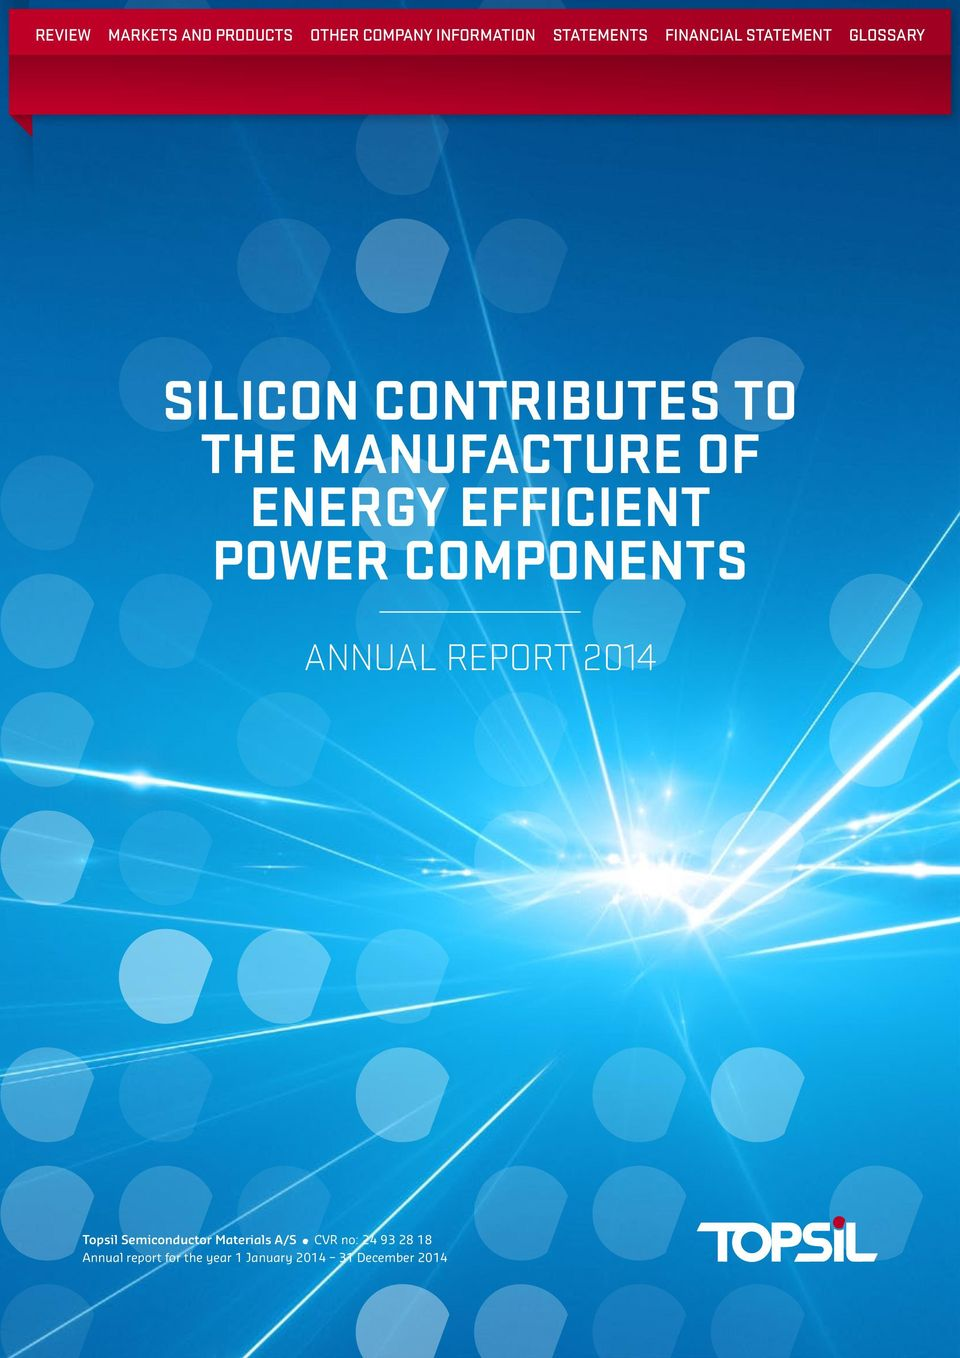 Silicon contributes to the manufacture of energy efficient power components Annual Report 2014 Topsil